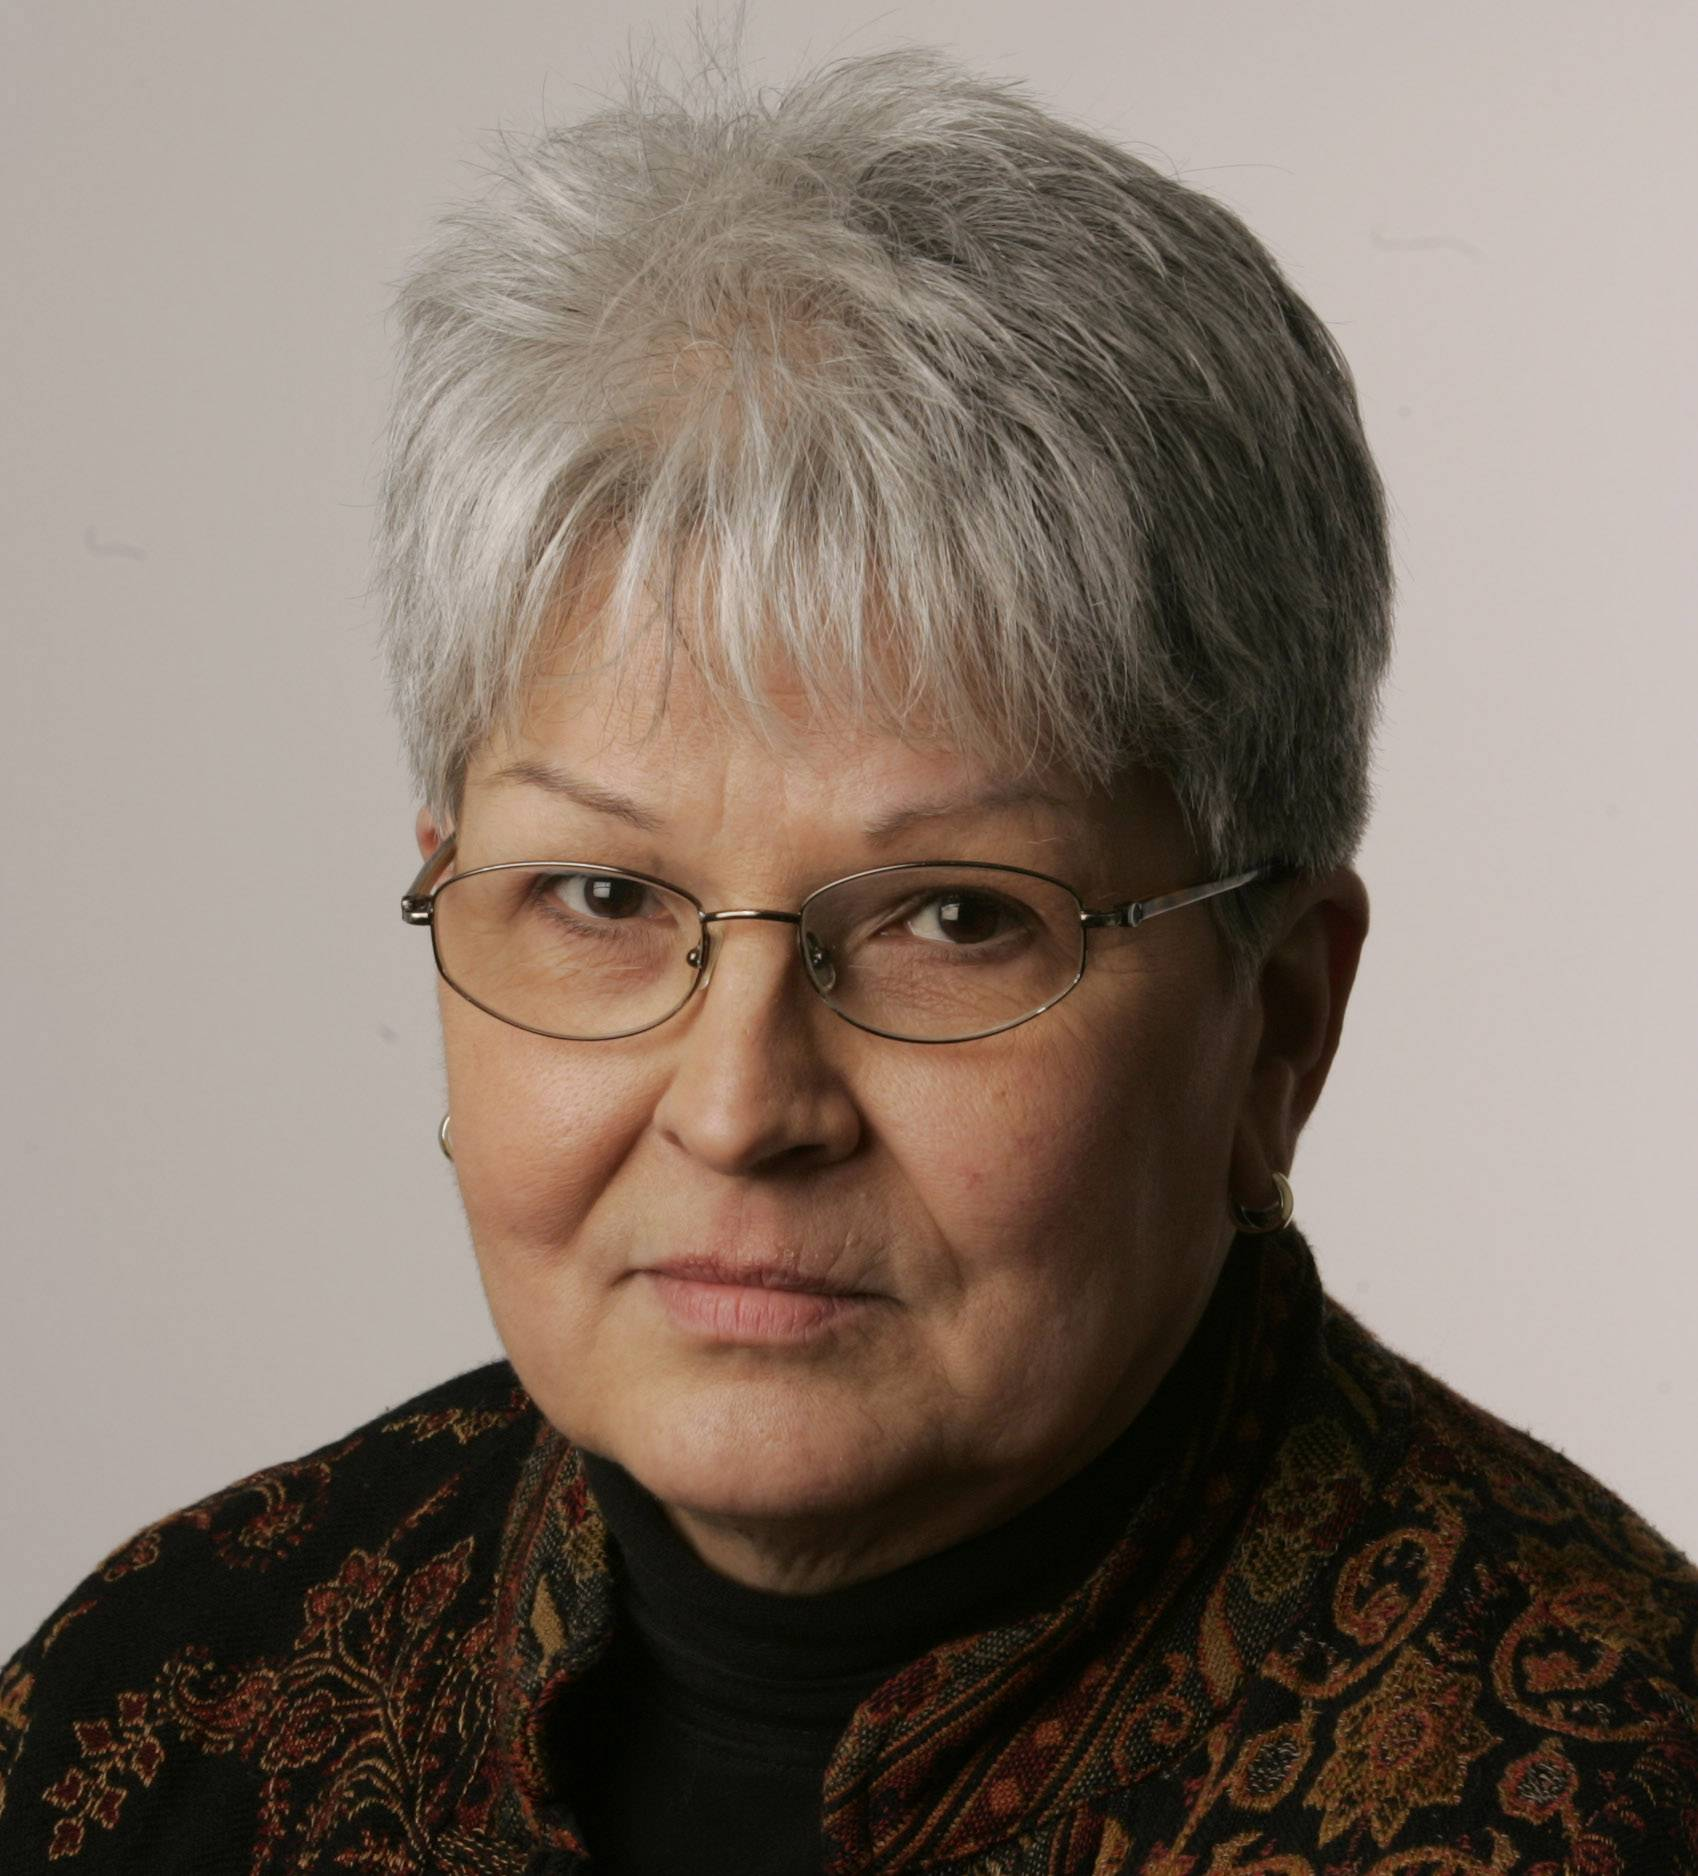 Former McHenry County coroner Marlene A. Lantz will be among the experts taking part in a series of workshops for aspiring crime writers Nov. 8 at the Schaumburg Township District Library.